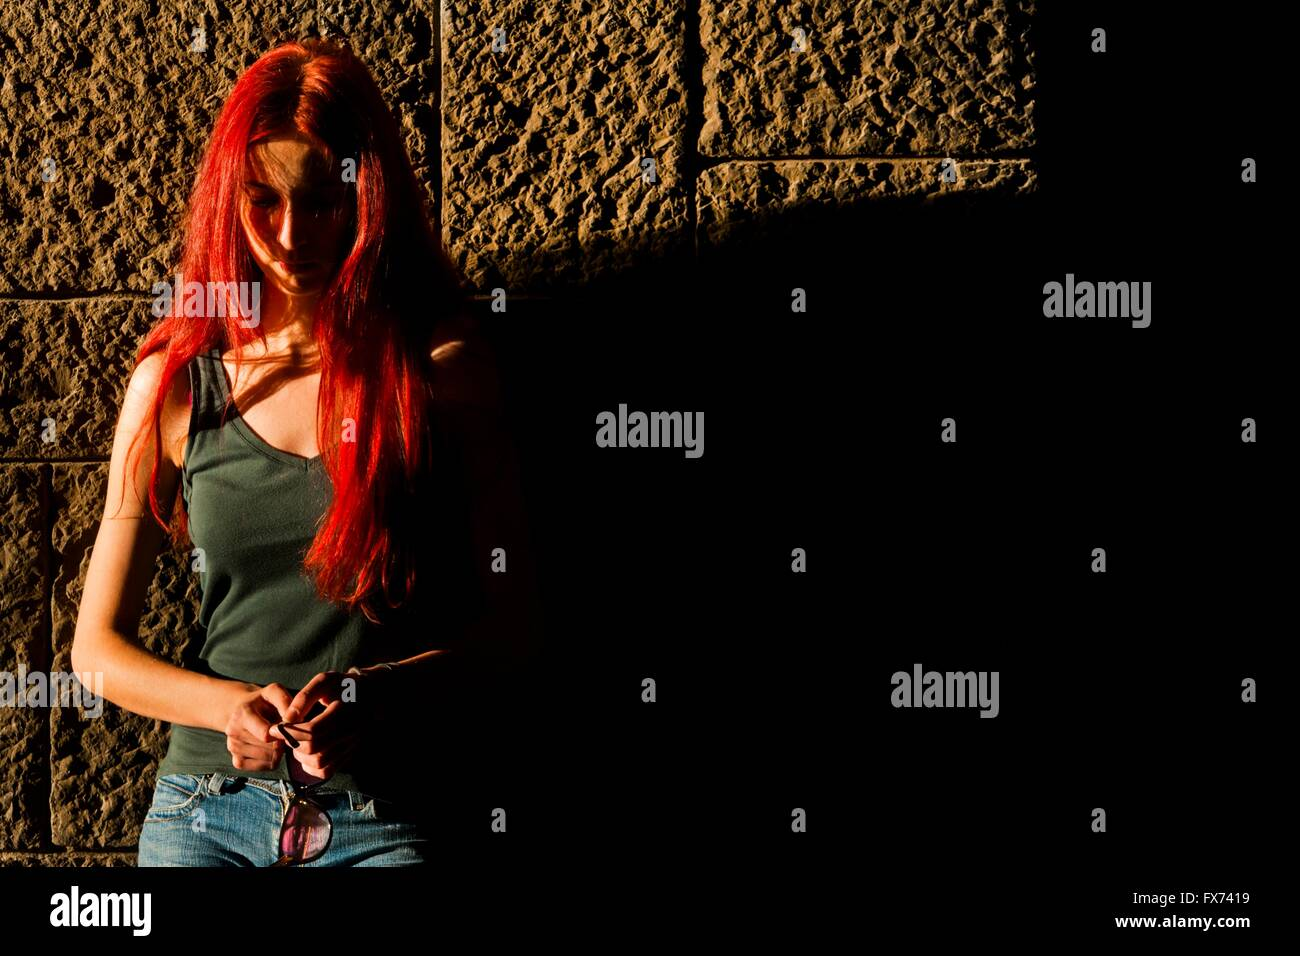 Red-haired woman with glasses in hands sunset sidelit sidelight Stock Photo